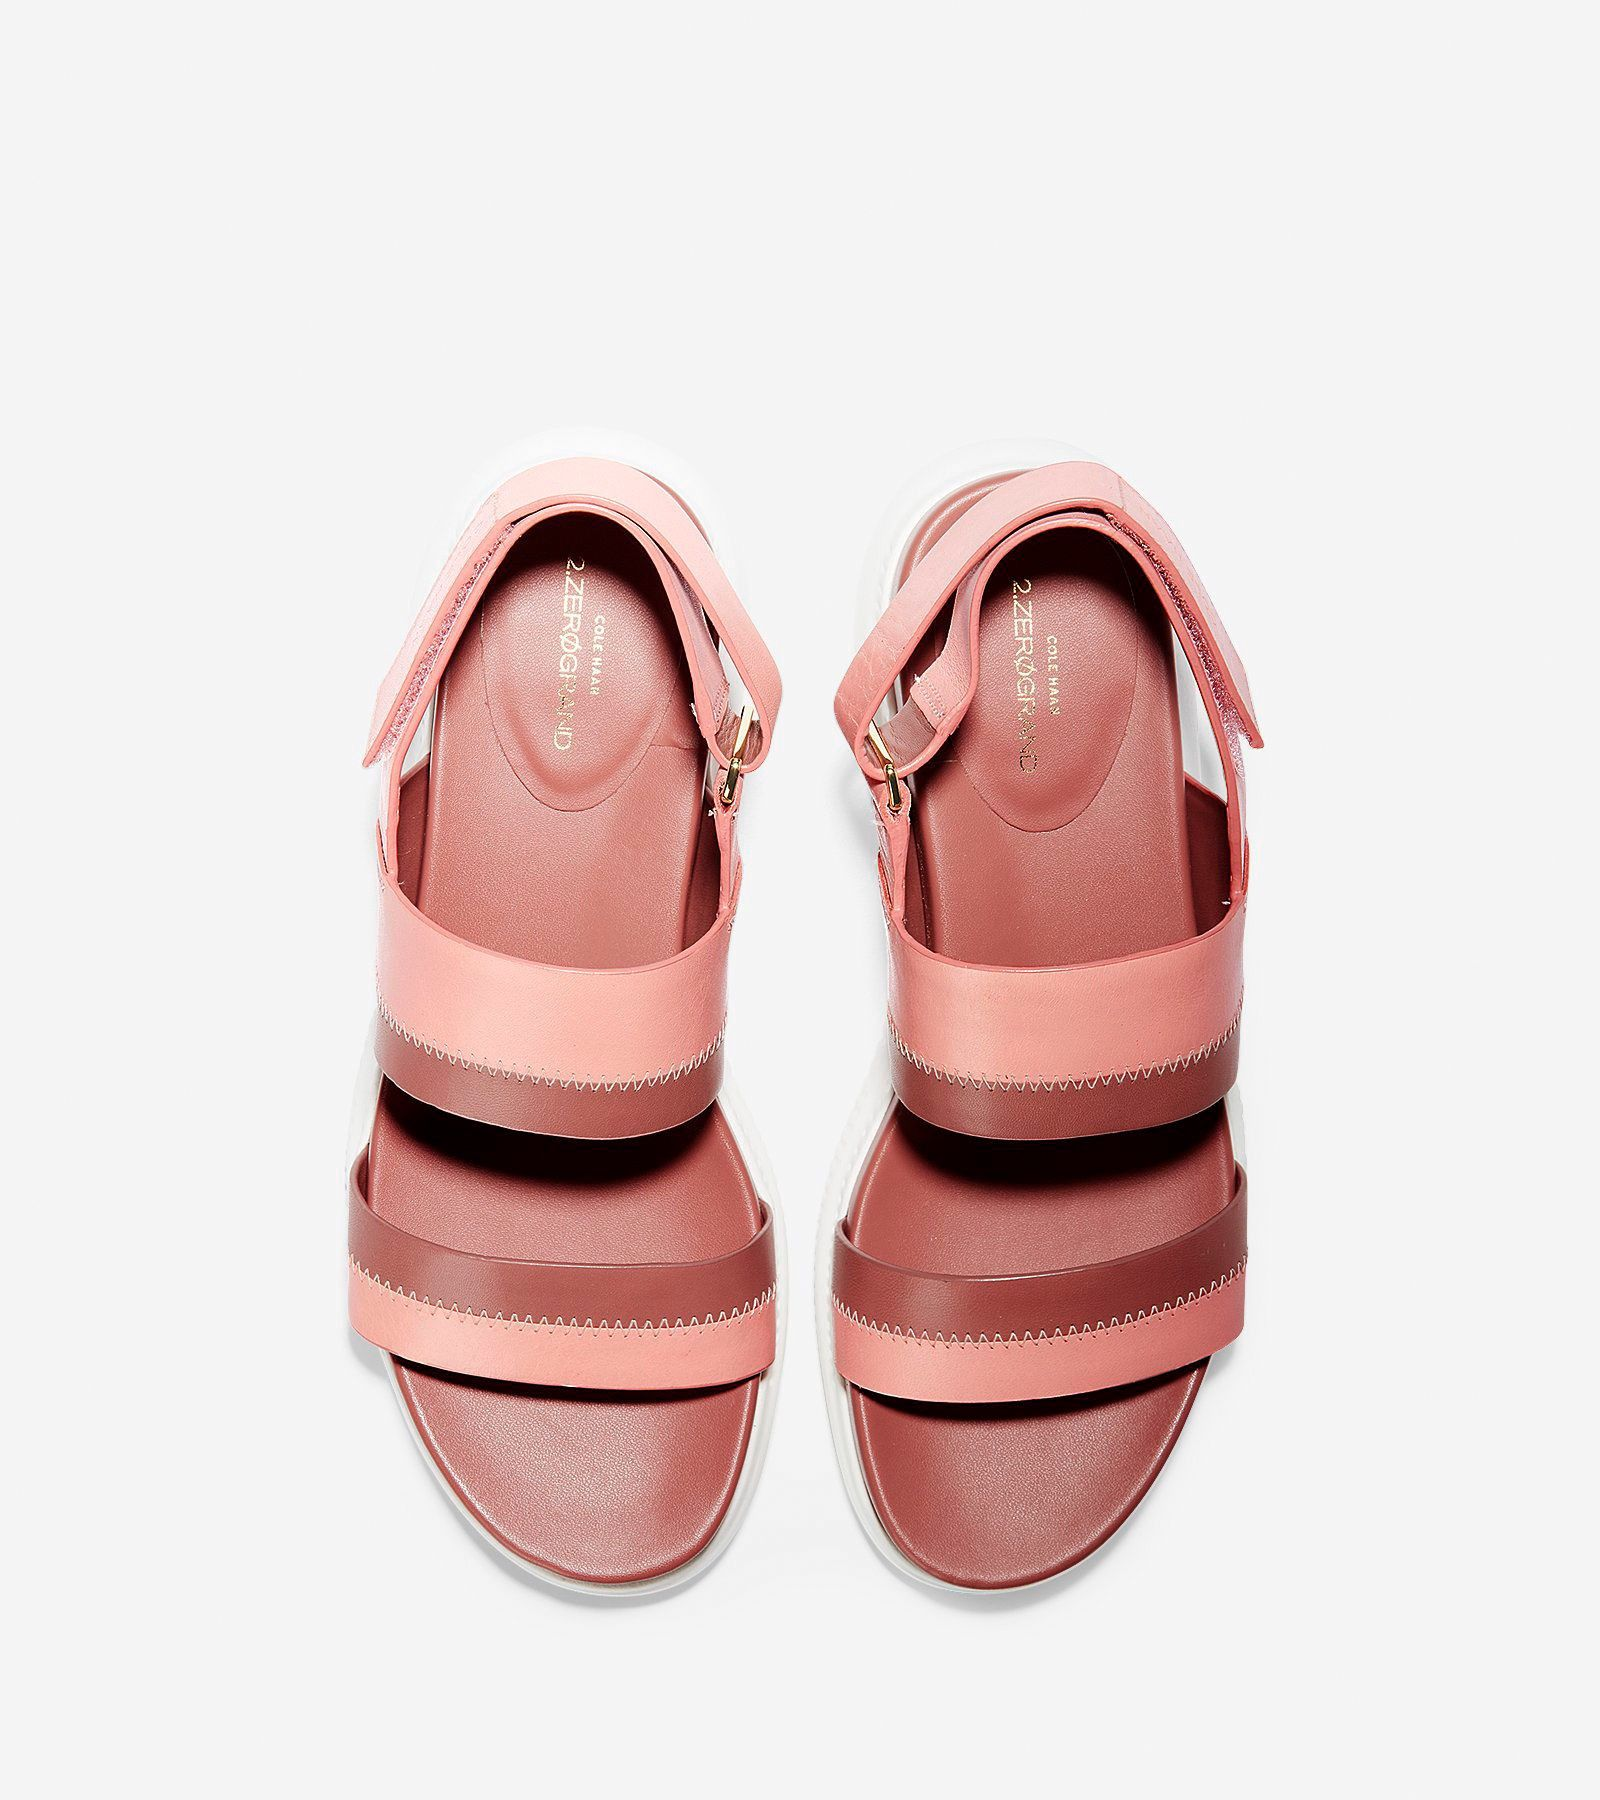 75f5da671322d ZERØGRAND Slide Sandal (30mm) - Coral Almond-cedarwood-optic White by Cole  Haan